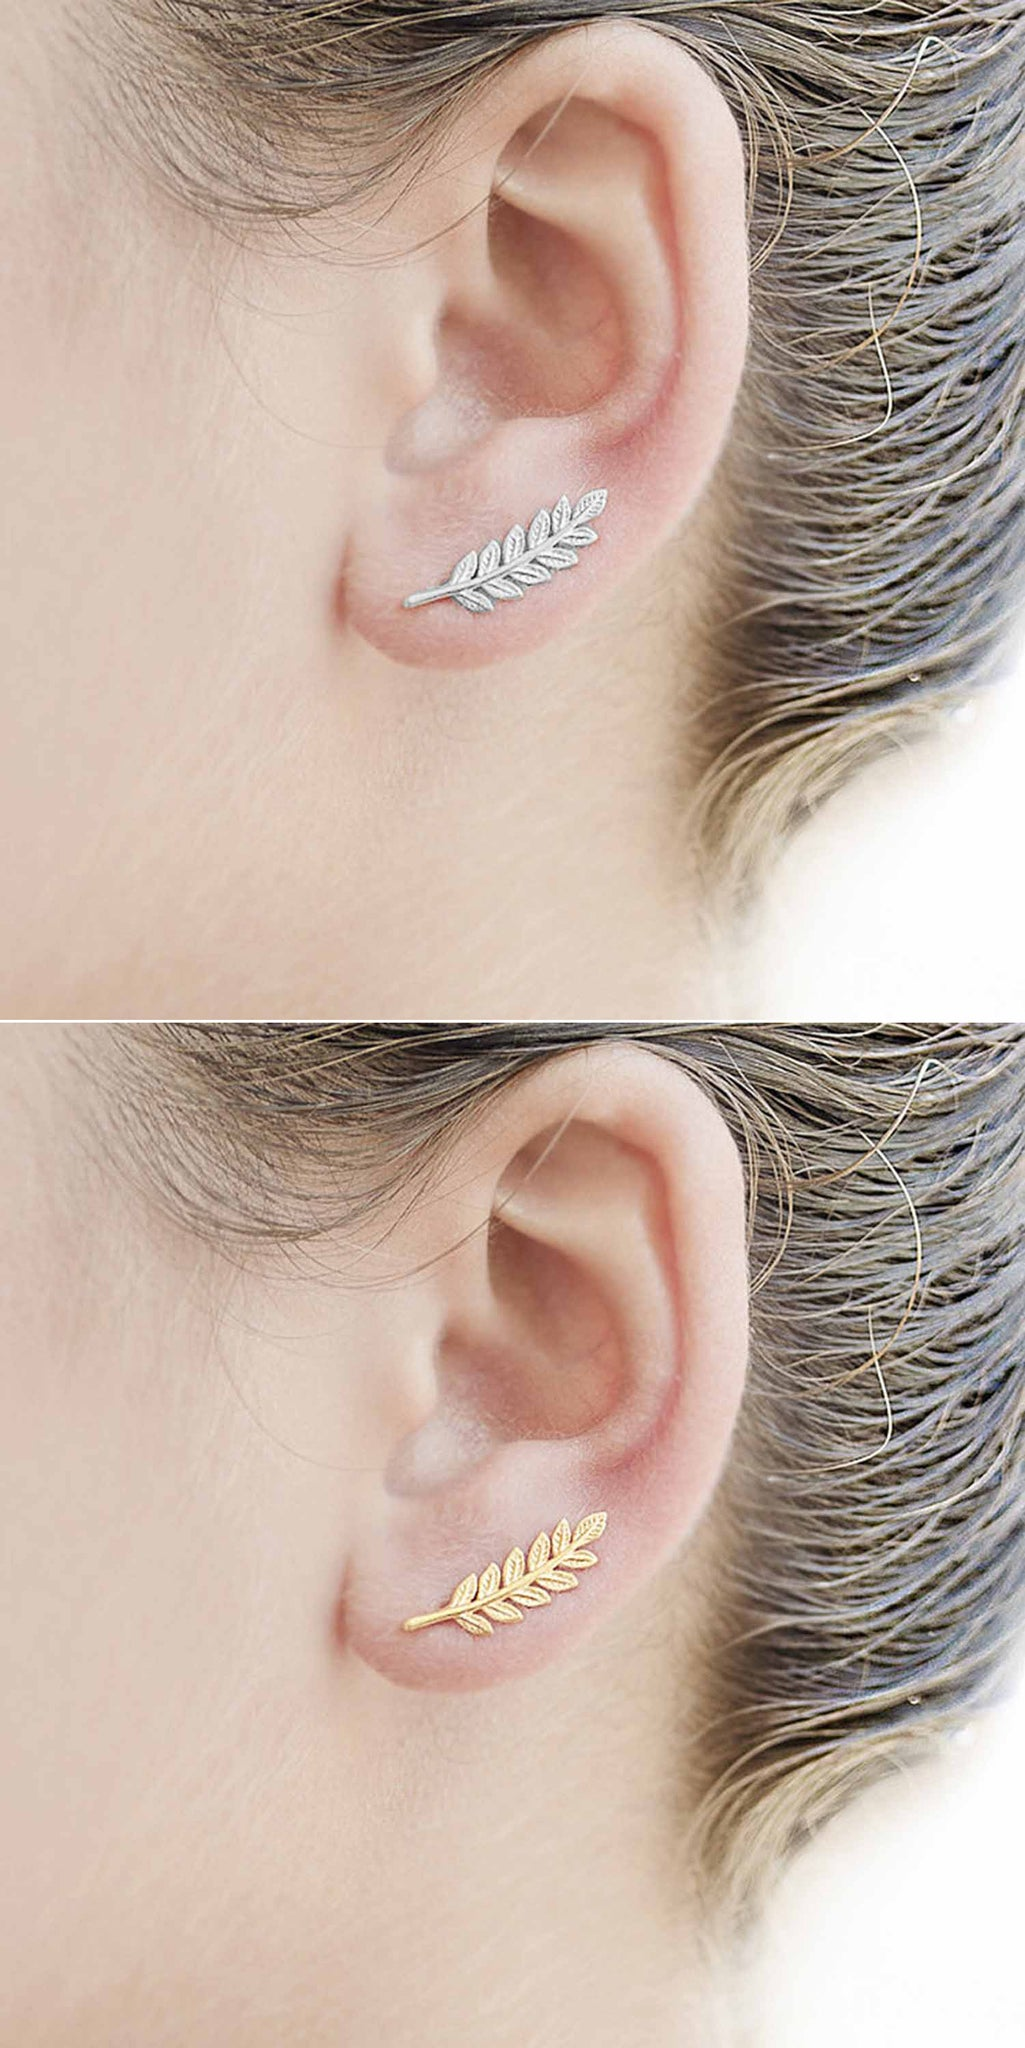 Cute Simple Ear Piercing Jewelry at MyBodiArt.com - Leaf Ear Climber Earring in Gold / Silver